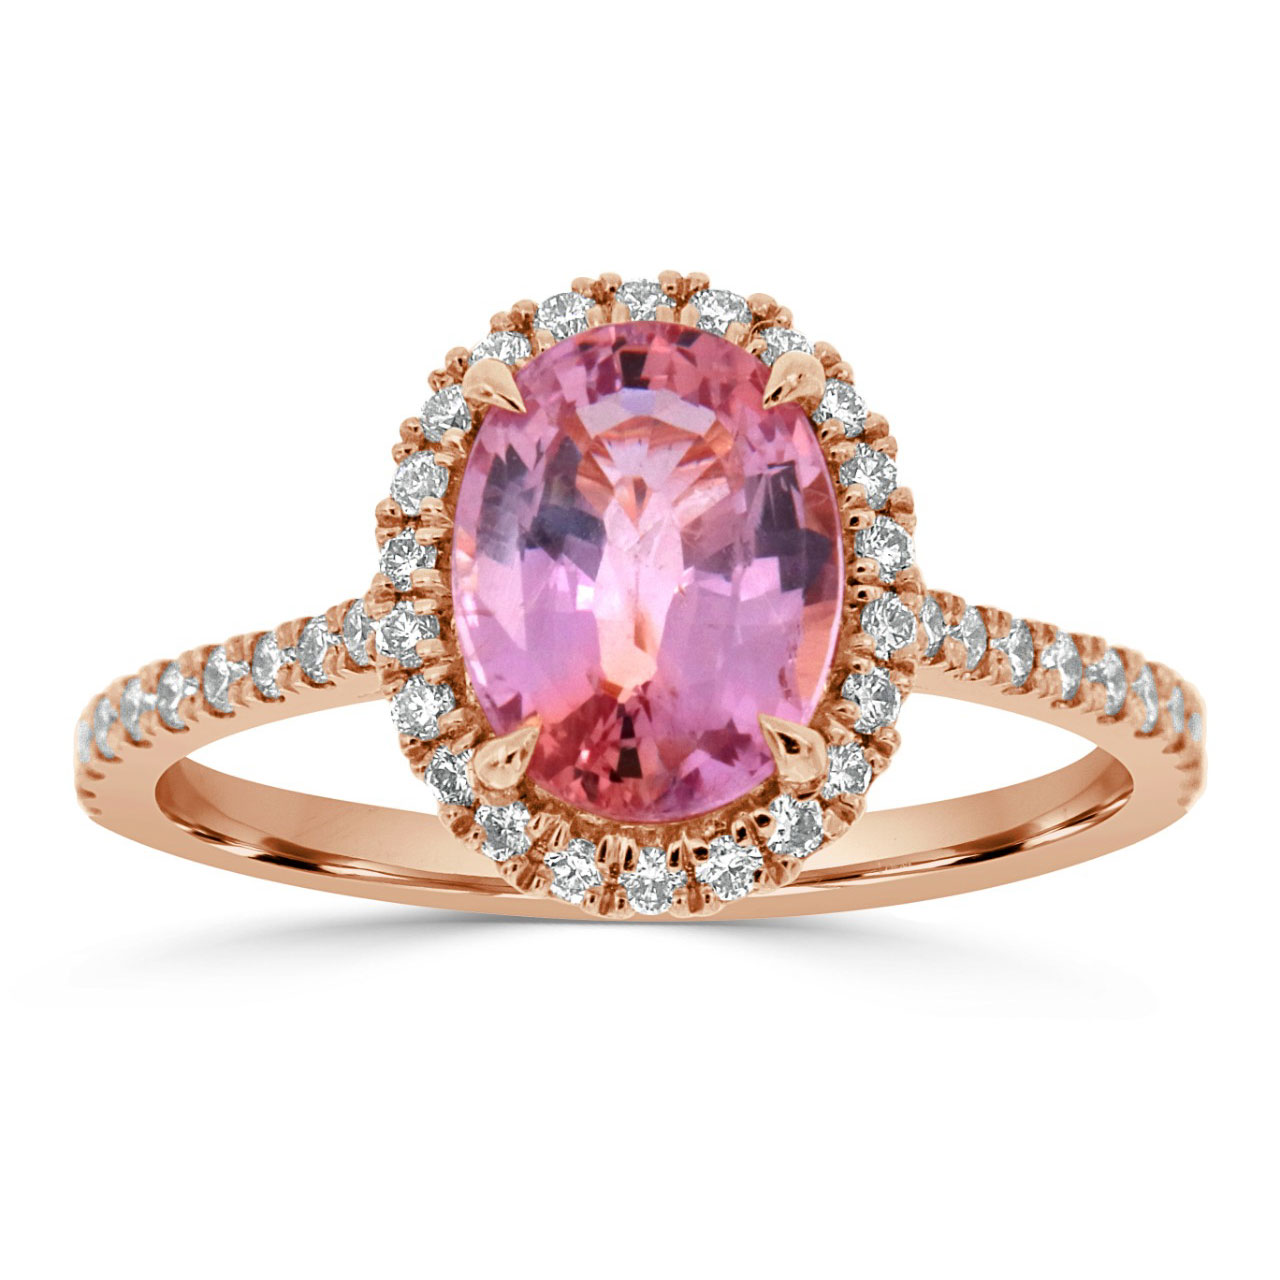 The Art of Jewels – 18K Rose Gold Oval Pink Sapphire Halo Ring GIA (Center 2.11 ct.)